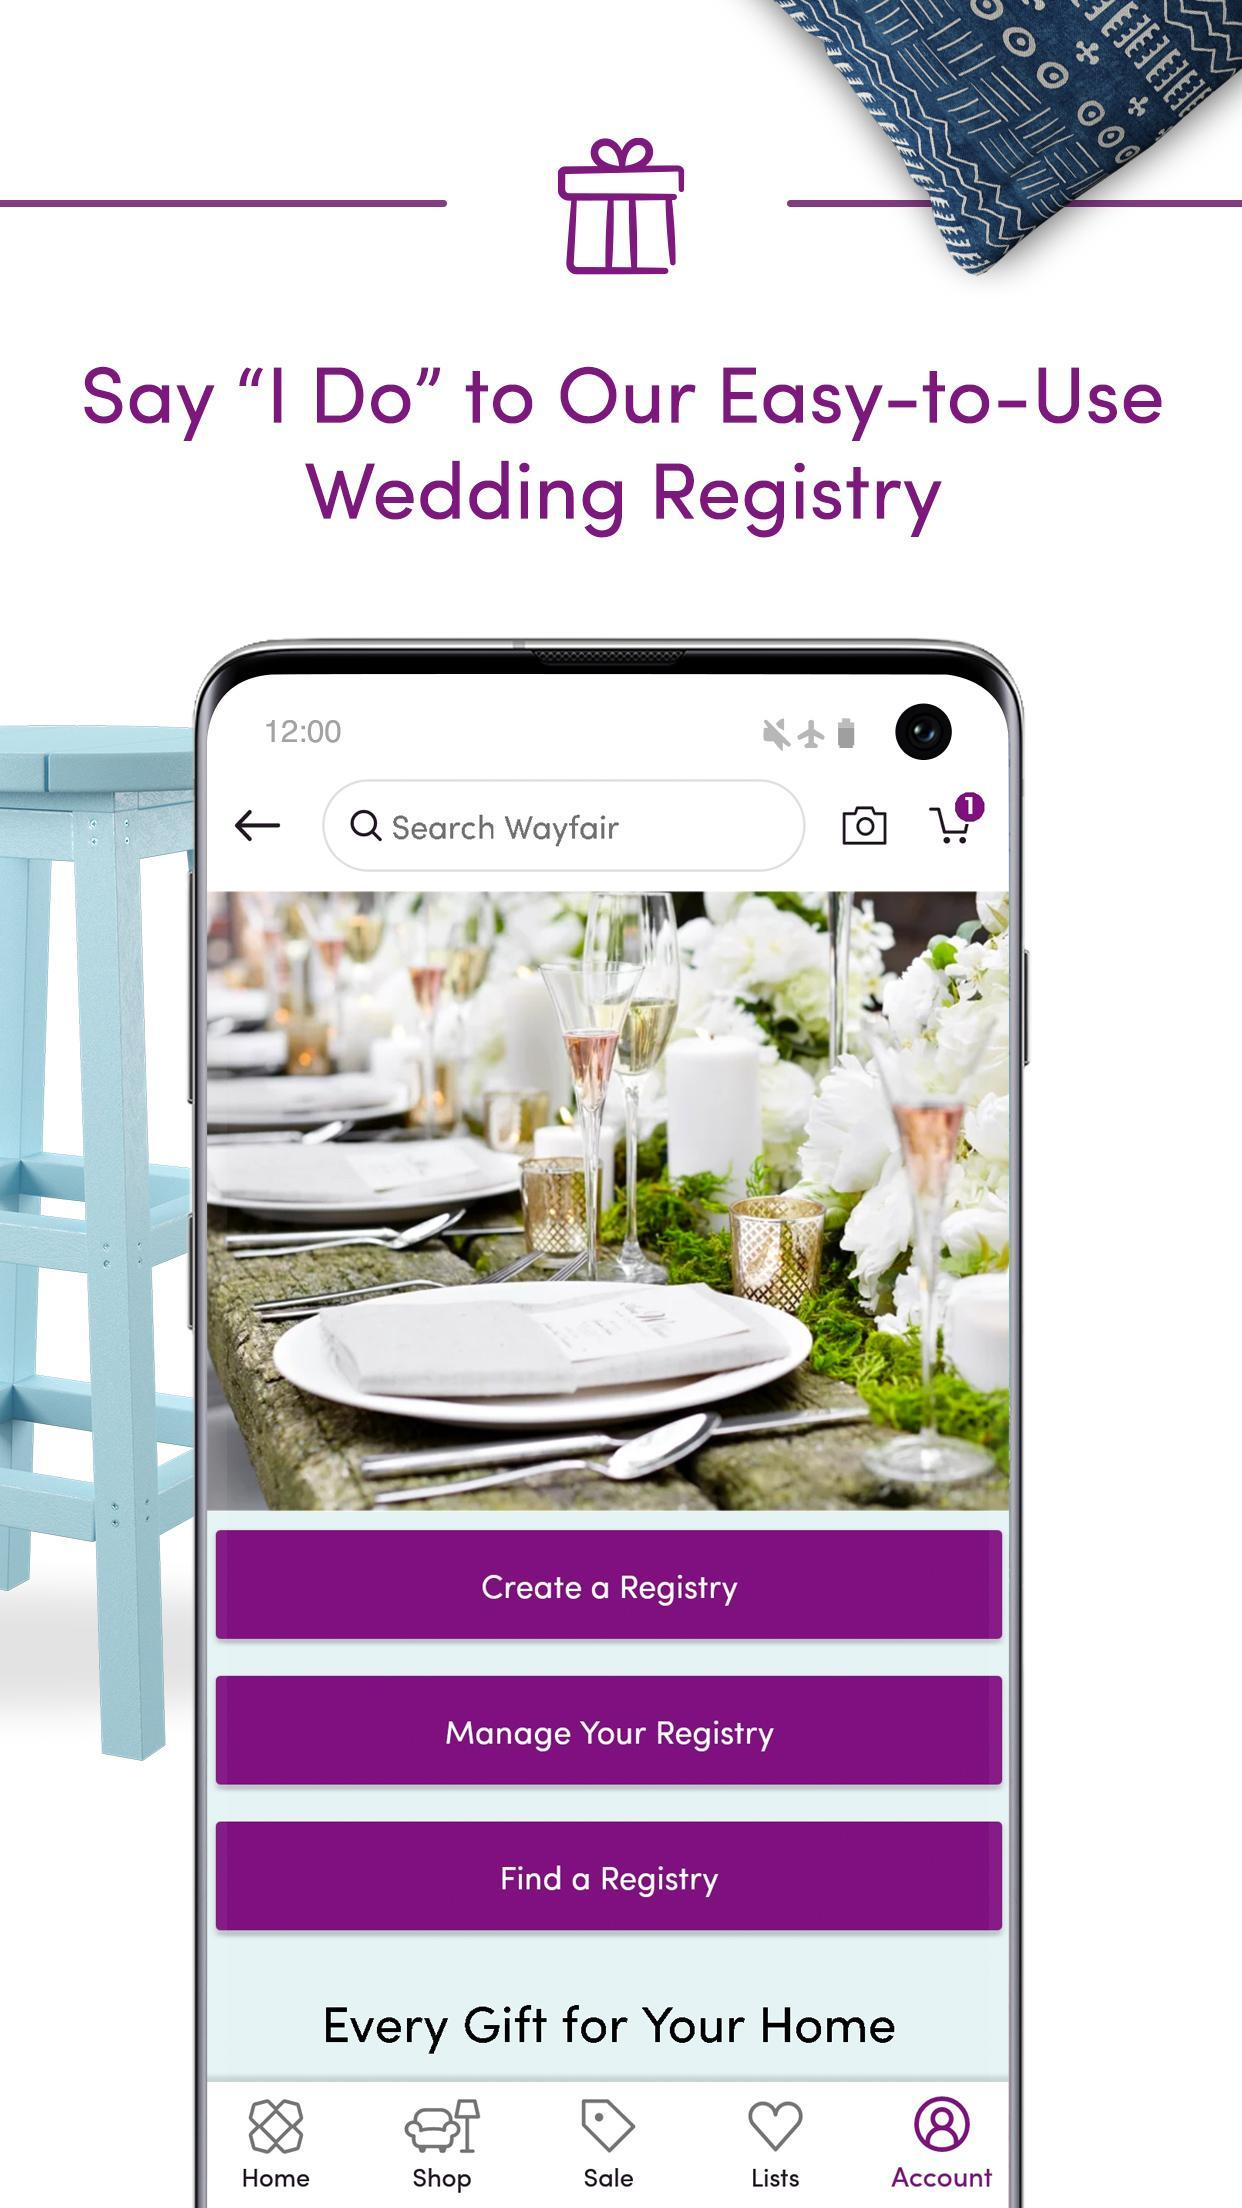 Wayfair Shop All Things Home 5.2.4 Screenshot 6